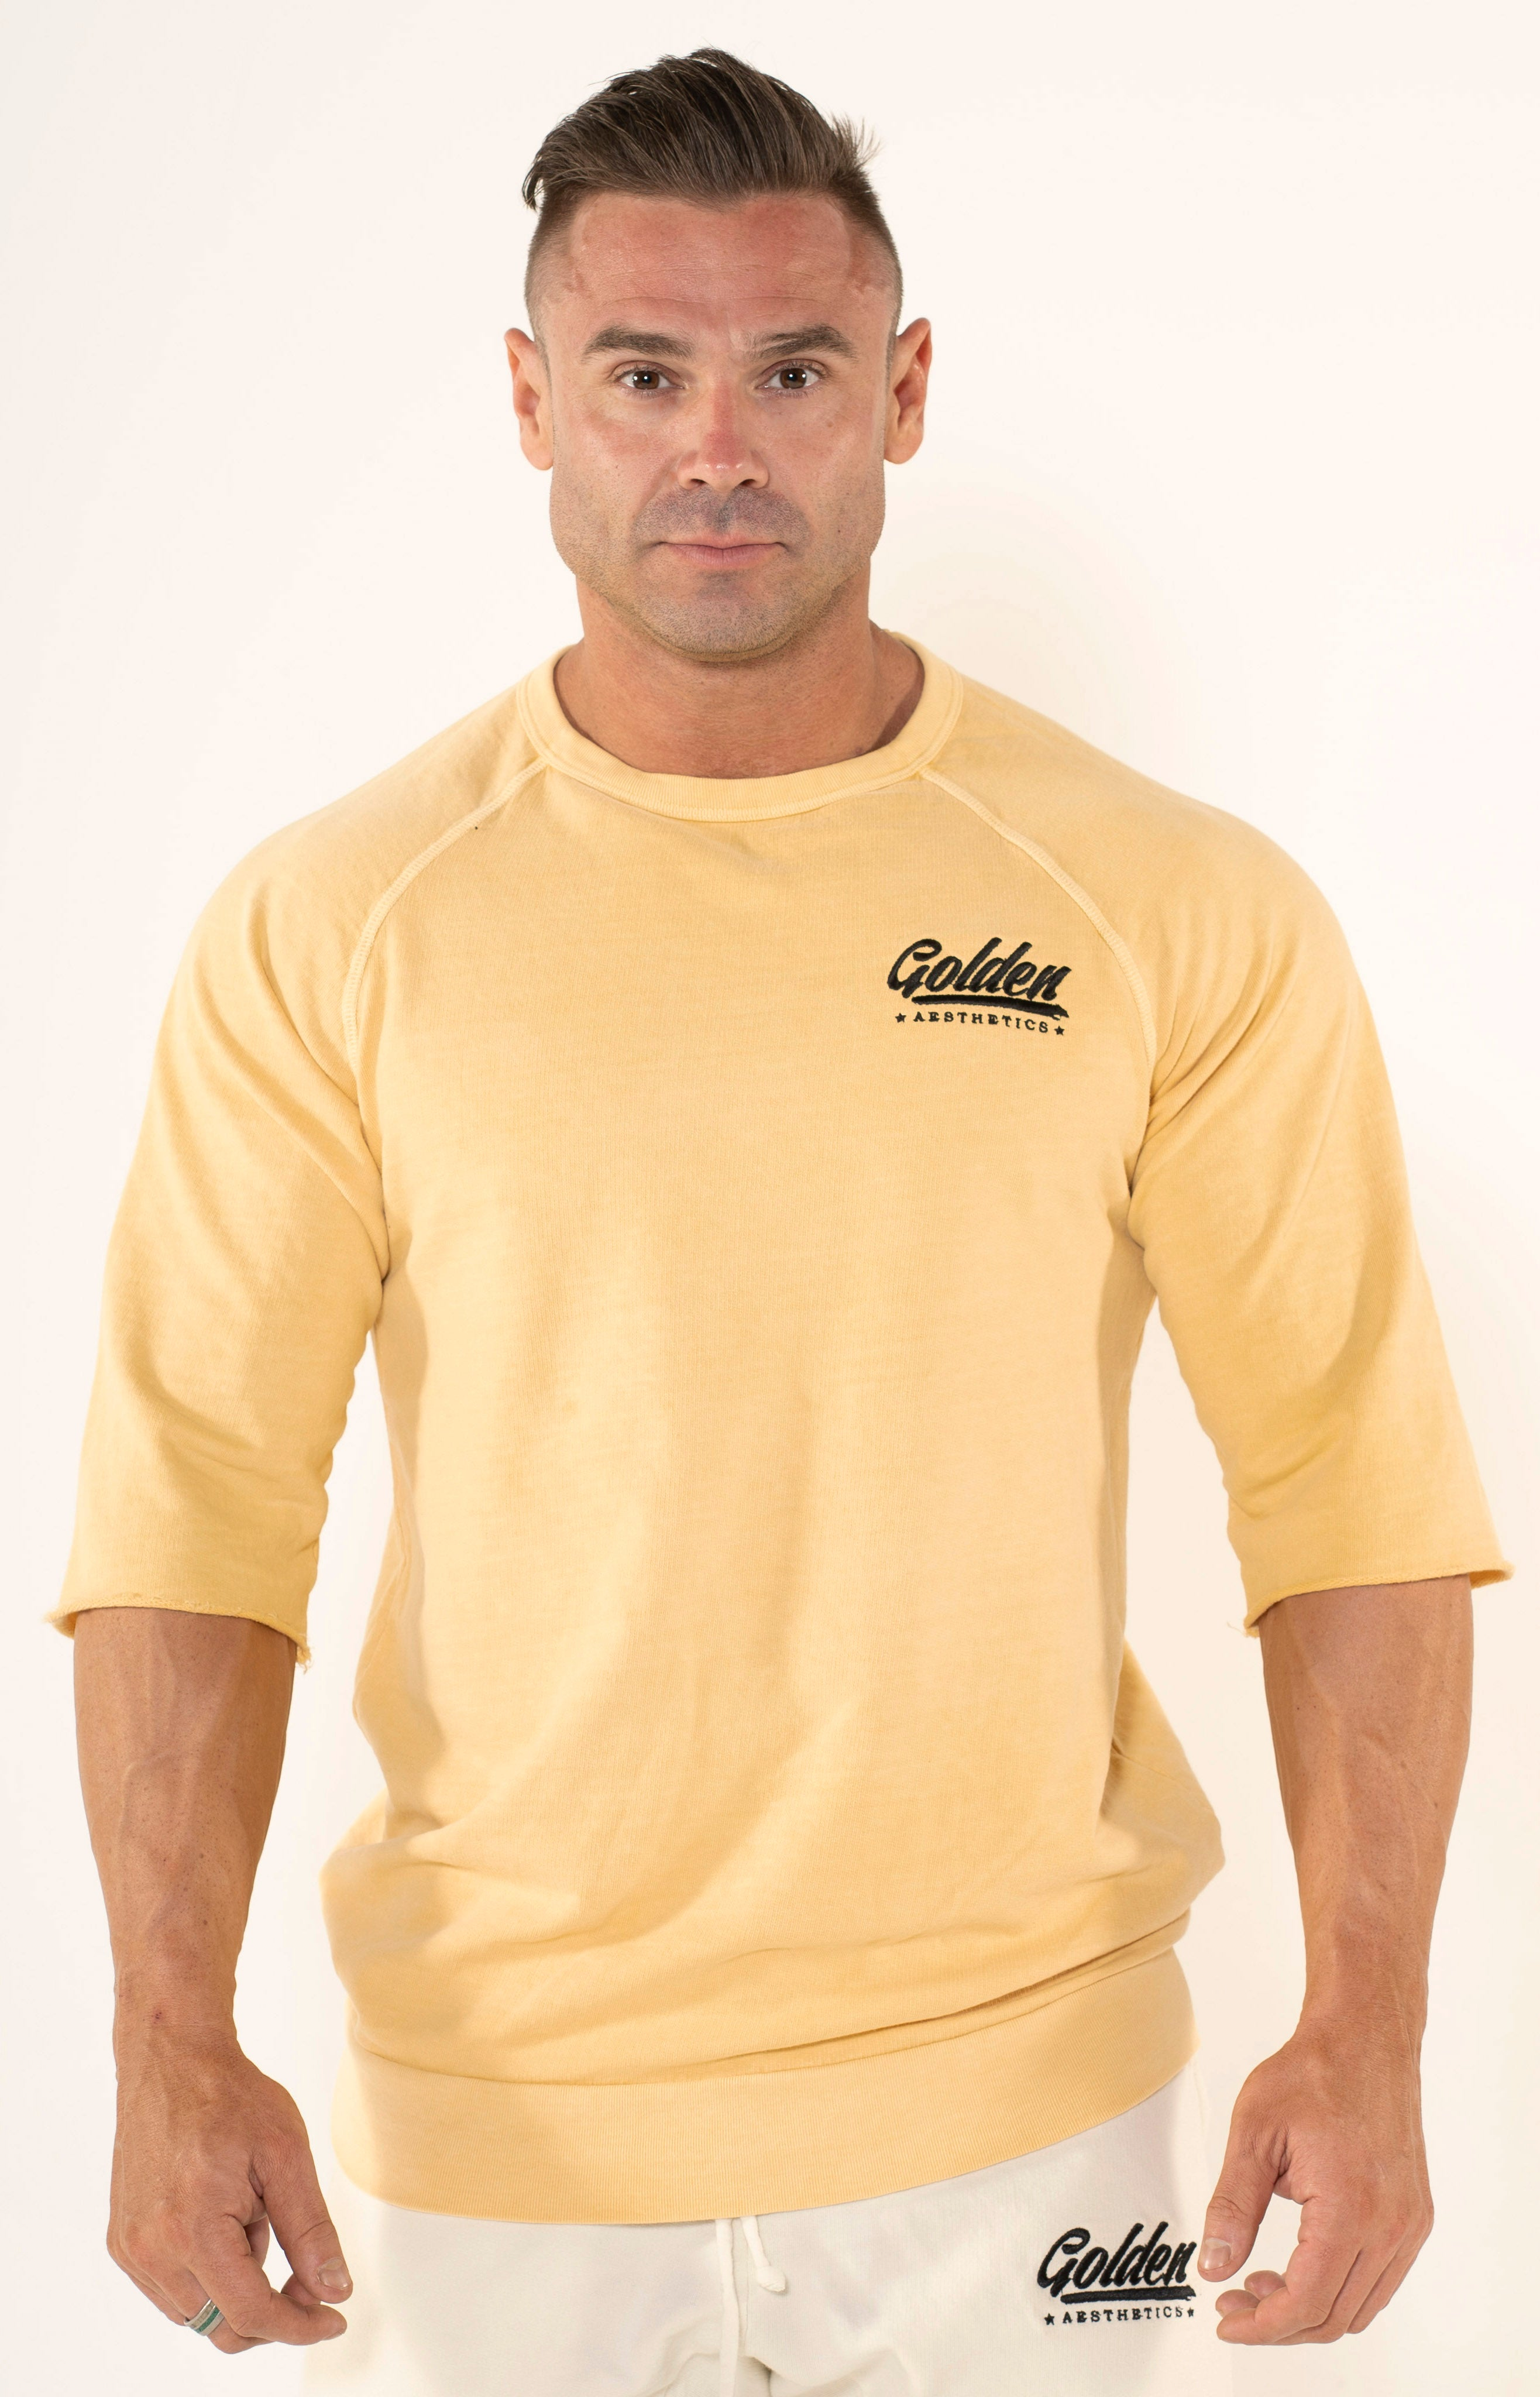 Men's Pineapple Raglan Top - Golden Aesthetics